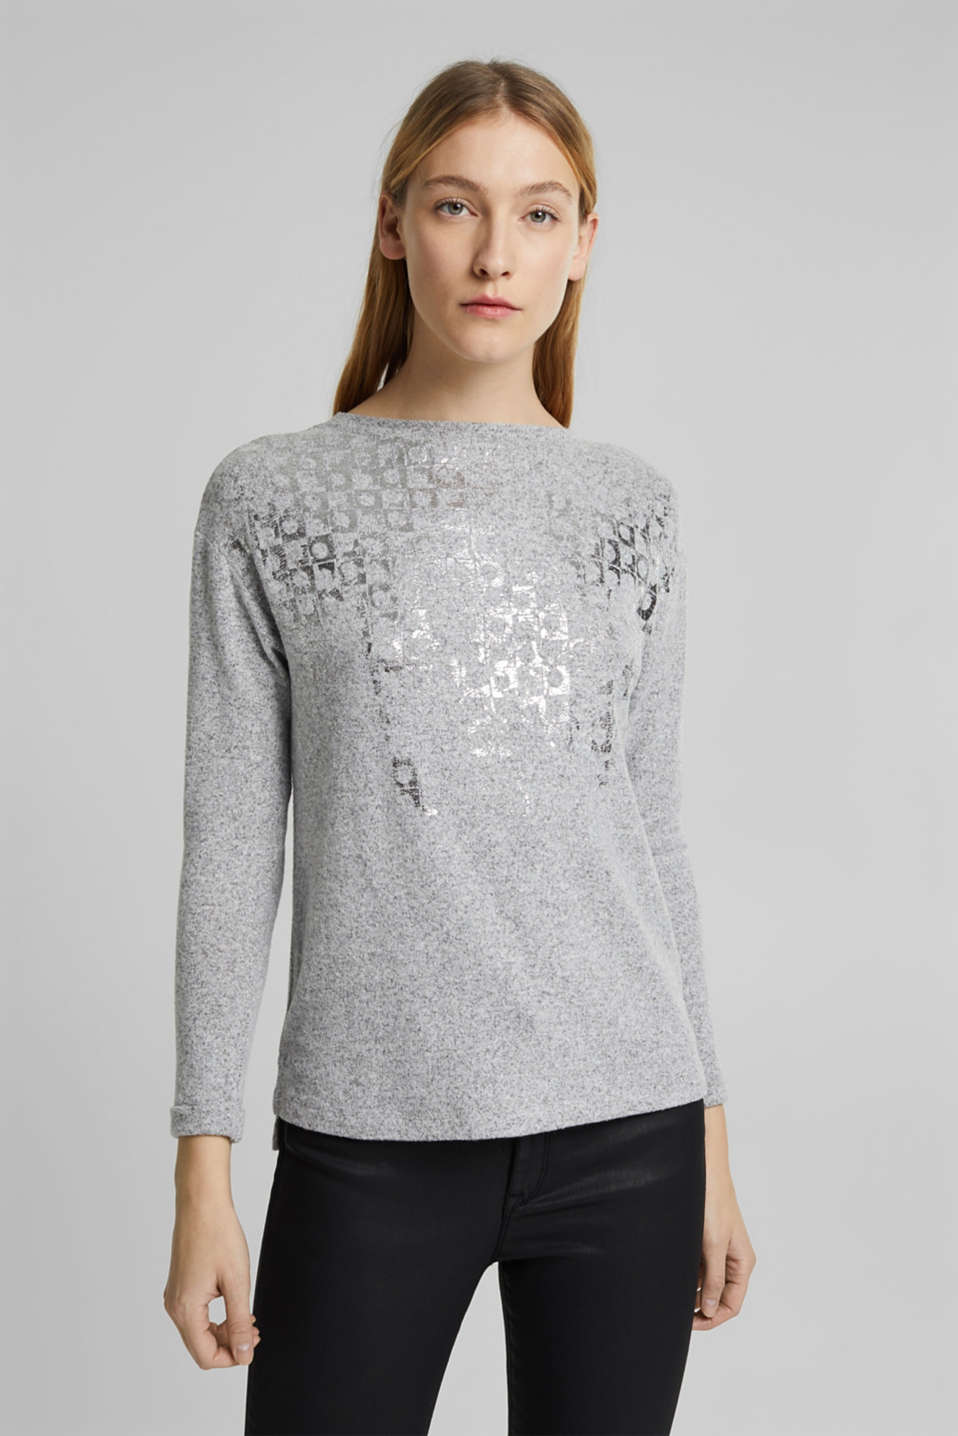 Esprit - Long sleeve top made of LENZING™ ECOVERO™